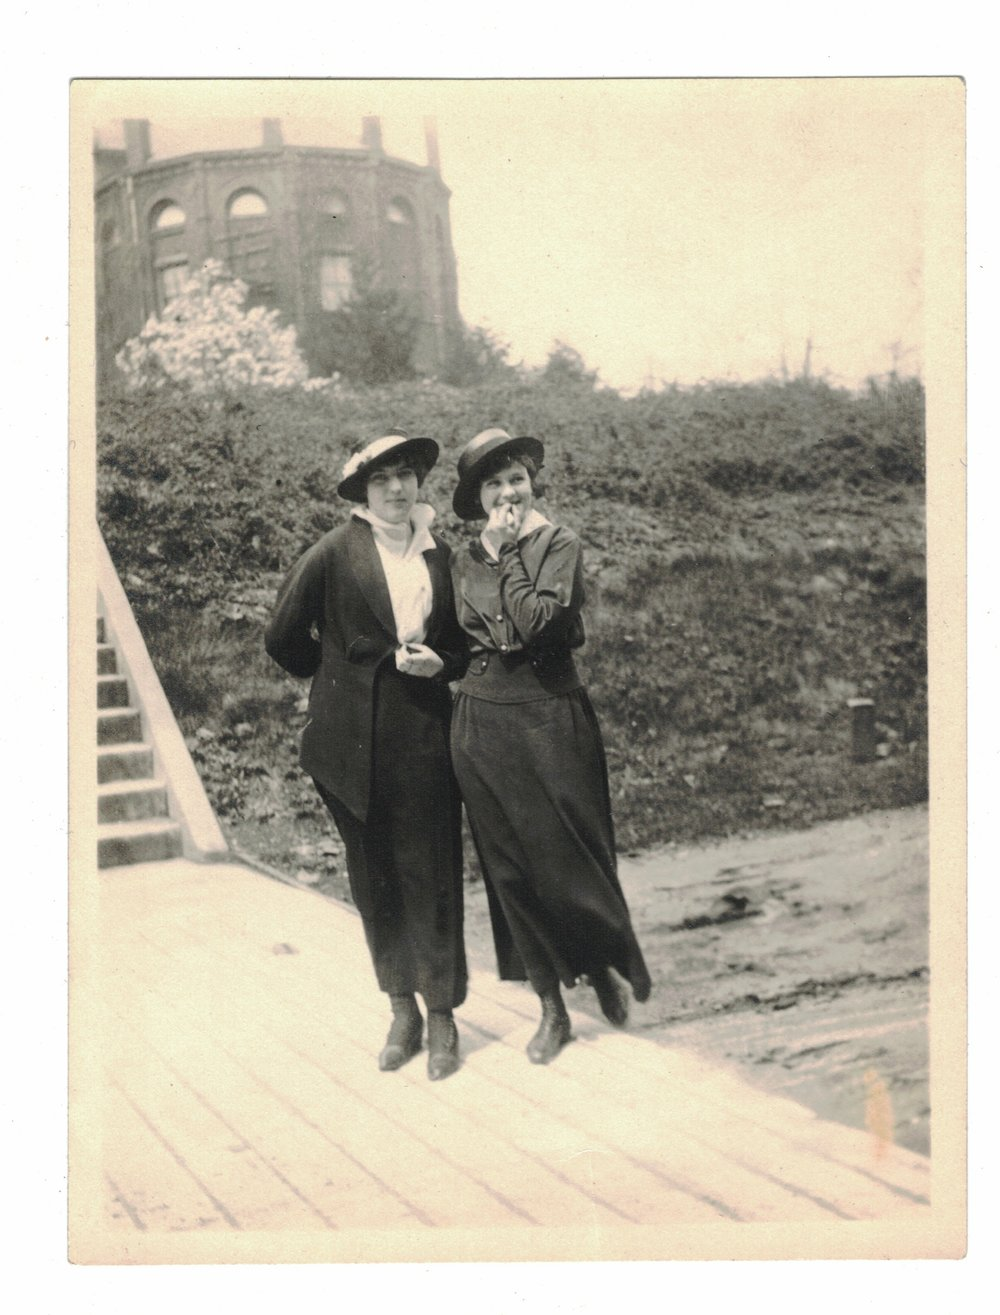 Evelyn Hazen (left) with friend outside of the Science Building.